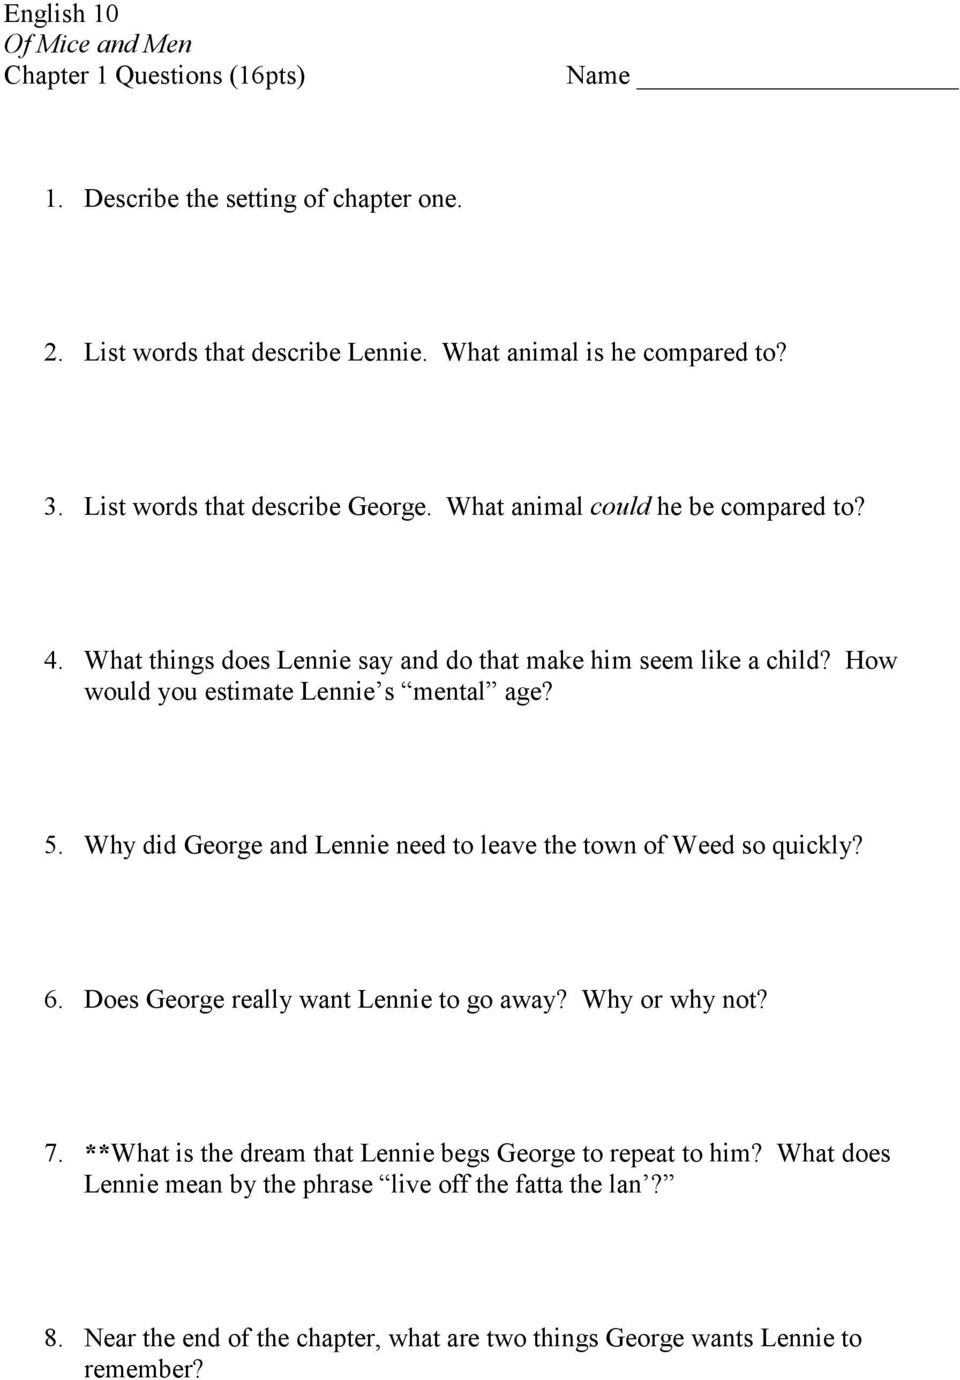 english 10 of mice and men chapter 1 questions 16pts 2 list how would you estimate lennie s mental age 5 why did george and lennie